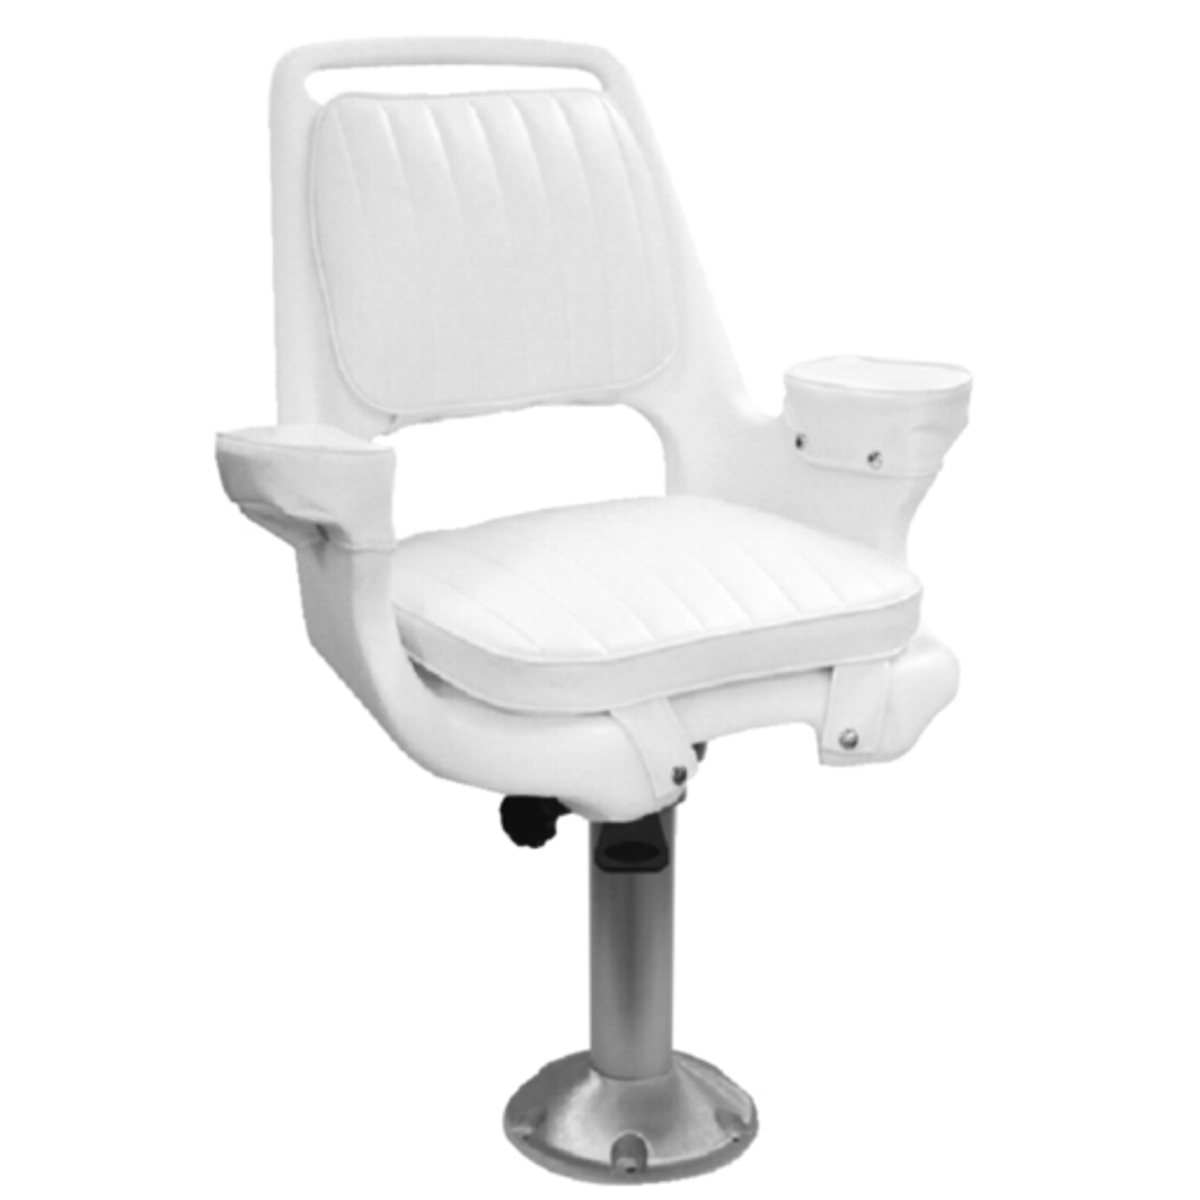 15 fixed height fishing boat captains pilot chair seat for Fishing boat seat